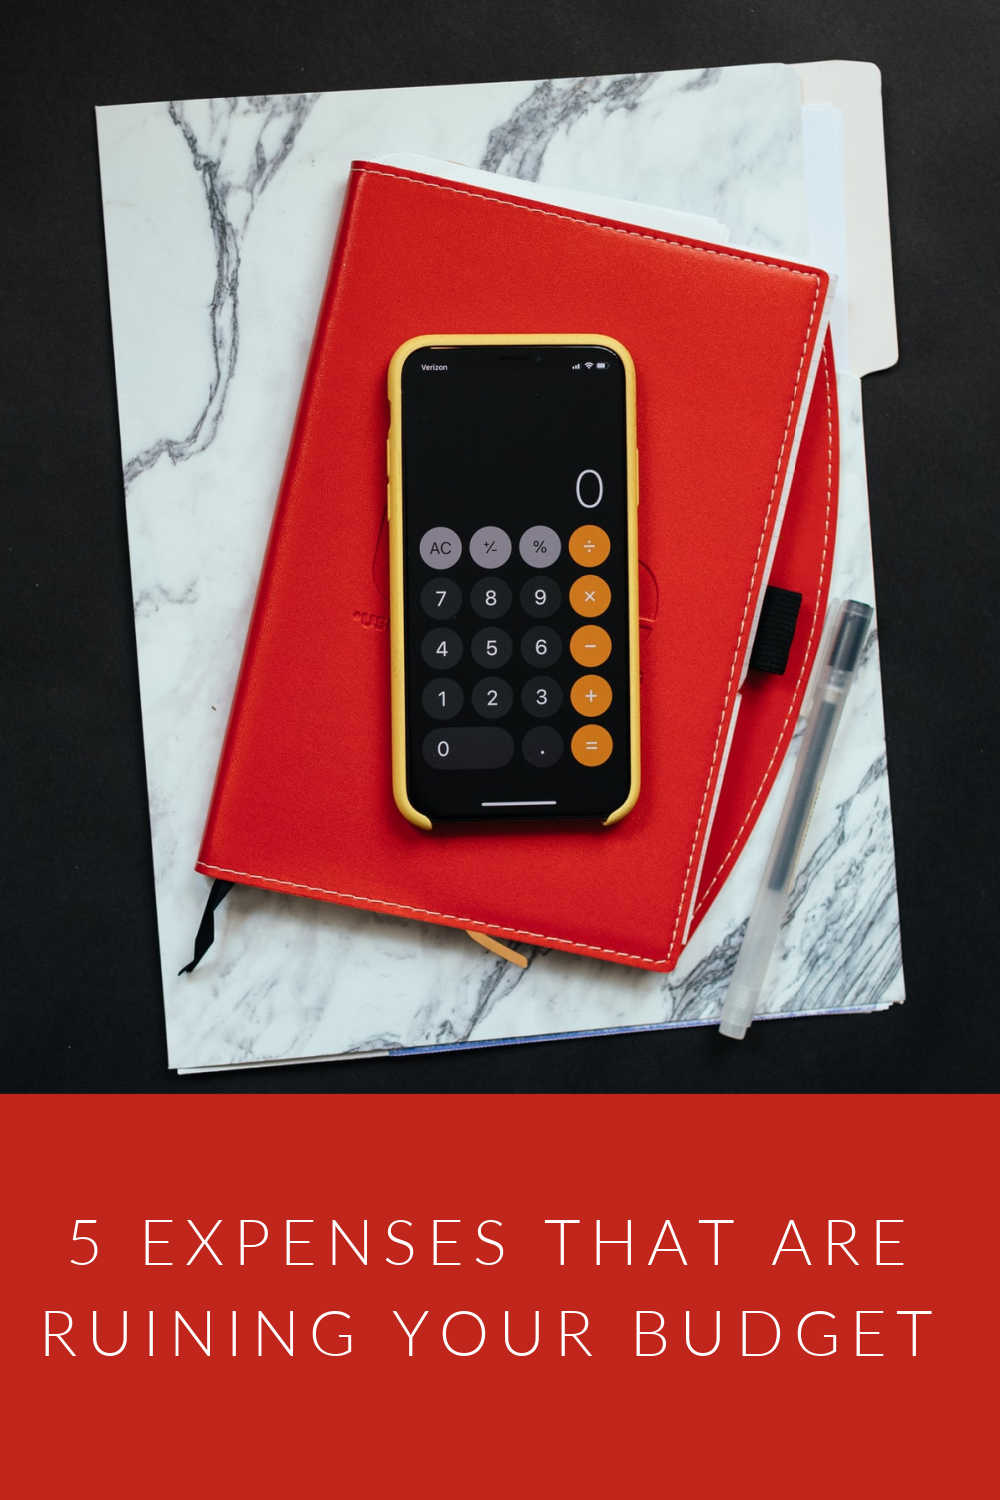 5 EXPENSES RUINING BUDGET